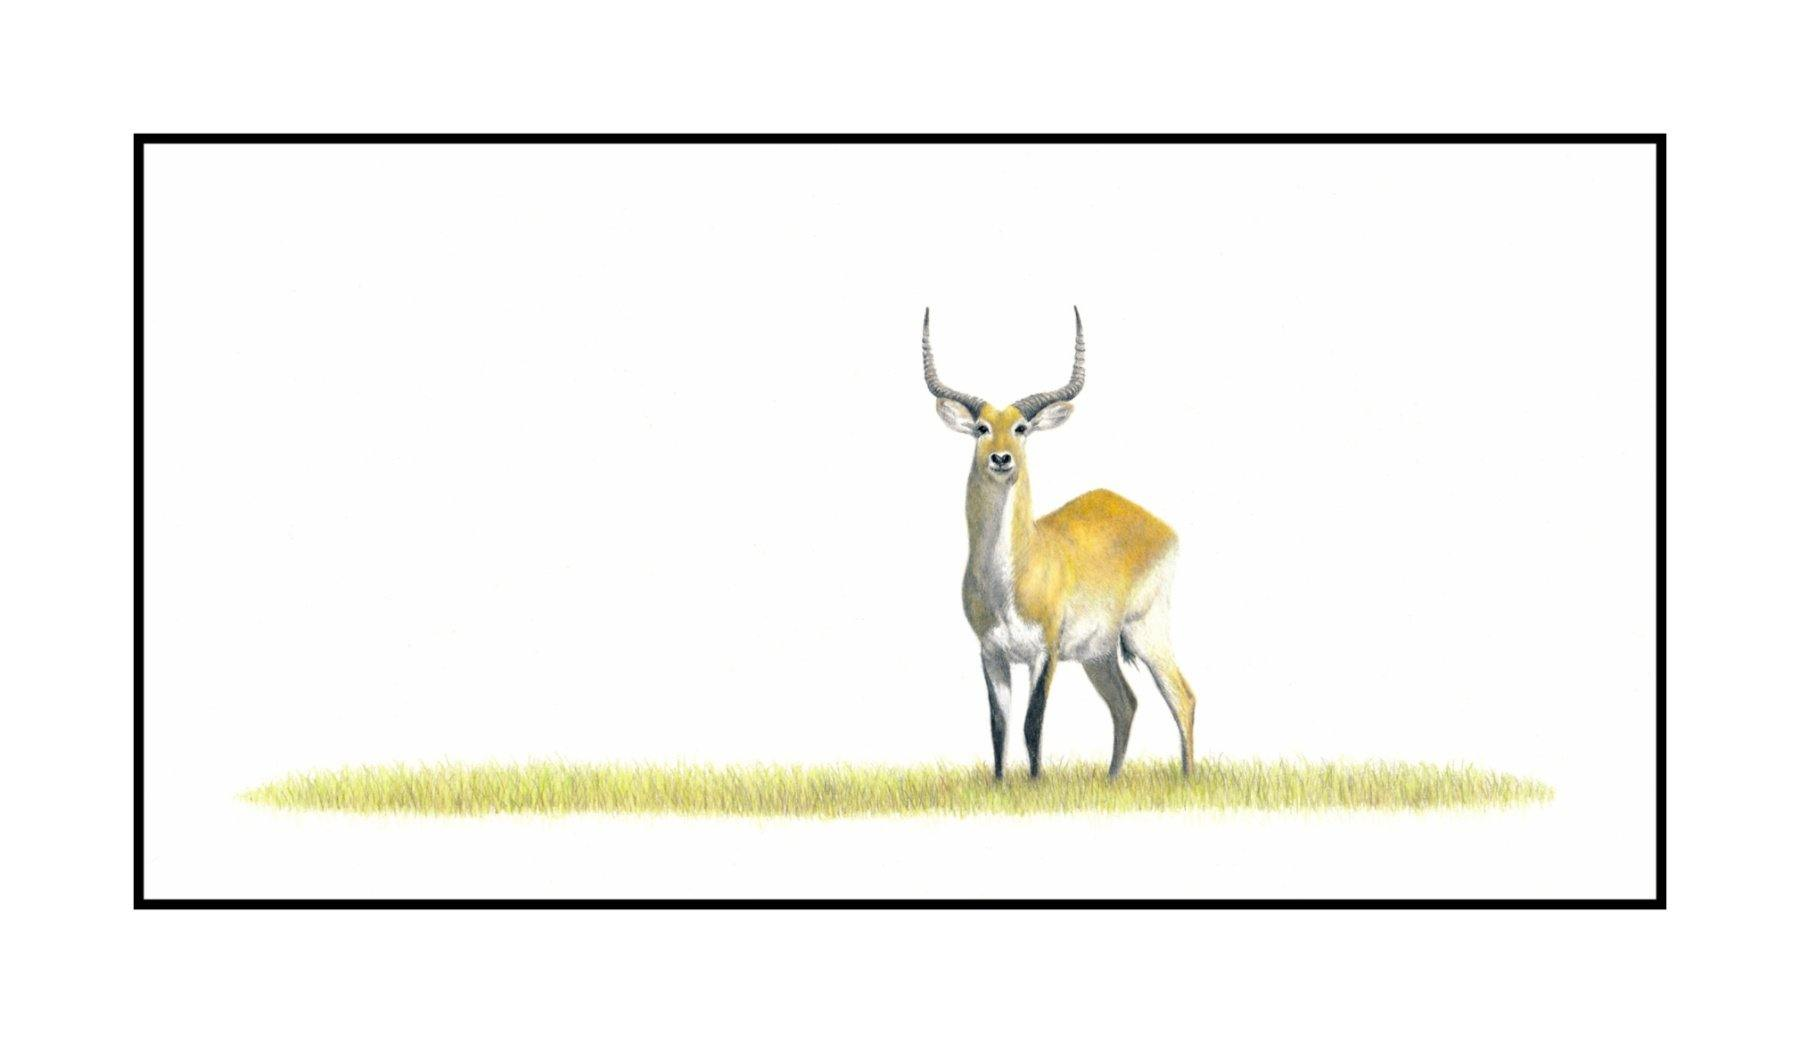 Red Lechwe - The Original - Framed - 39cm x 27cm